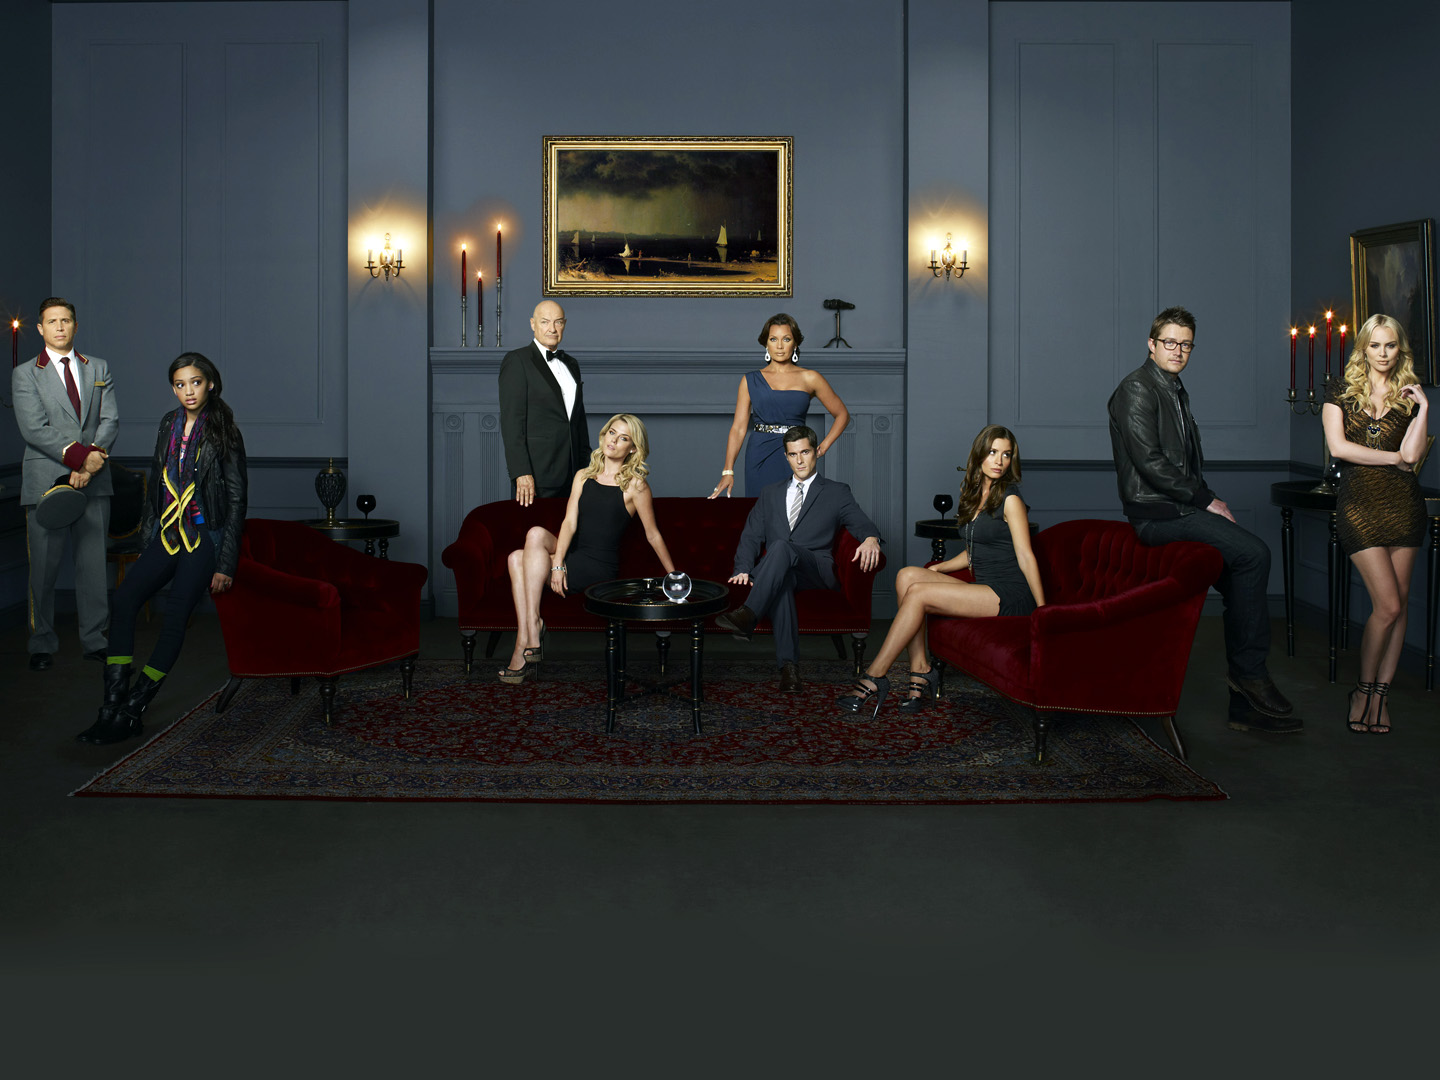 ERIK PALLADINO, SAMANTHA LOGAN, TERRY O'QUINN, RACHAEL TAYLOR, VANESSA WILLIAMS, DAVE ANNABLE, MERCEDES MASOHN, ROBERT BUCKLEY, HELENA MATTSSON